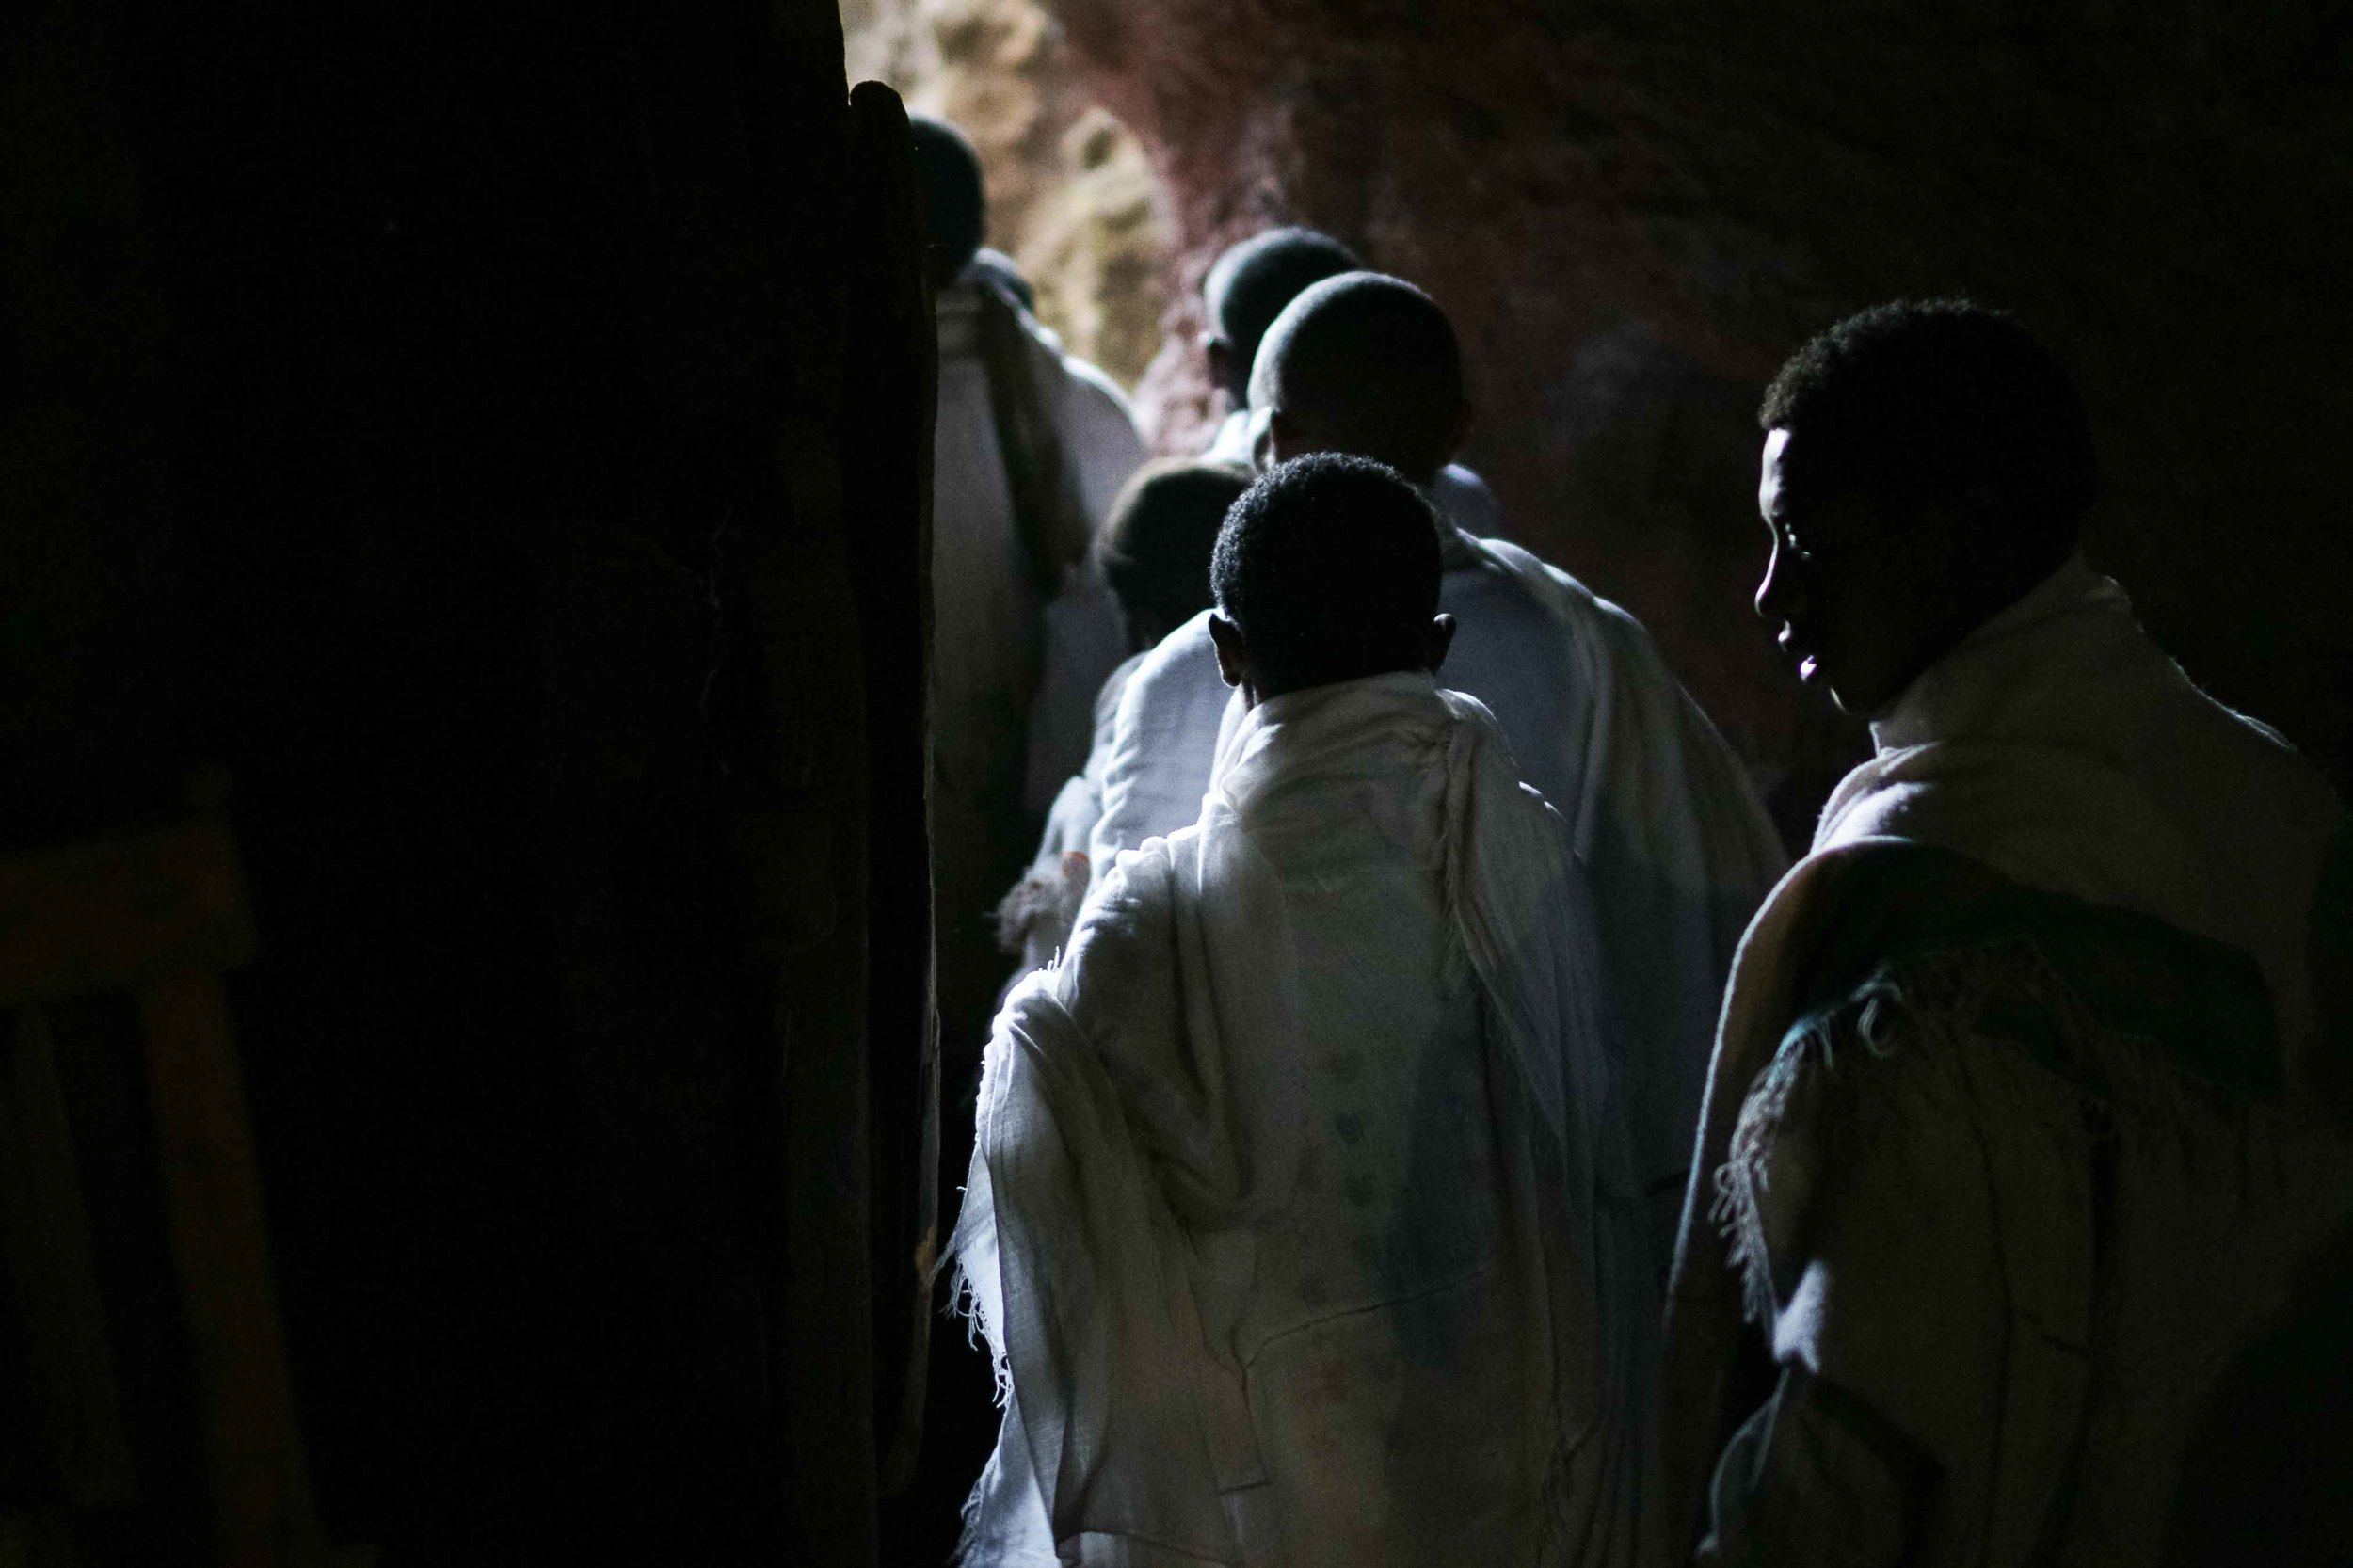 Narrow tunnelsunderneath the churches and within the mountainconnect the churches, and as the number of pilgrims swell dramatically with Christmas approaching, the passages become an increasingly tight traverse. Stories of long treks echo off the cool stone, with one pilgrim telling me of his group's barefoot journey of more than 8 days in order to reach Lalibela. As so many villages are within reach, more than 60,000 pilgrims descend on the churches each Christmas.